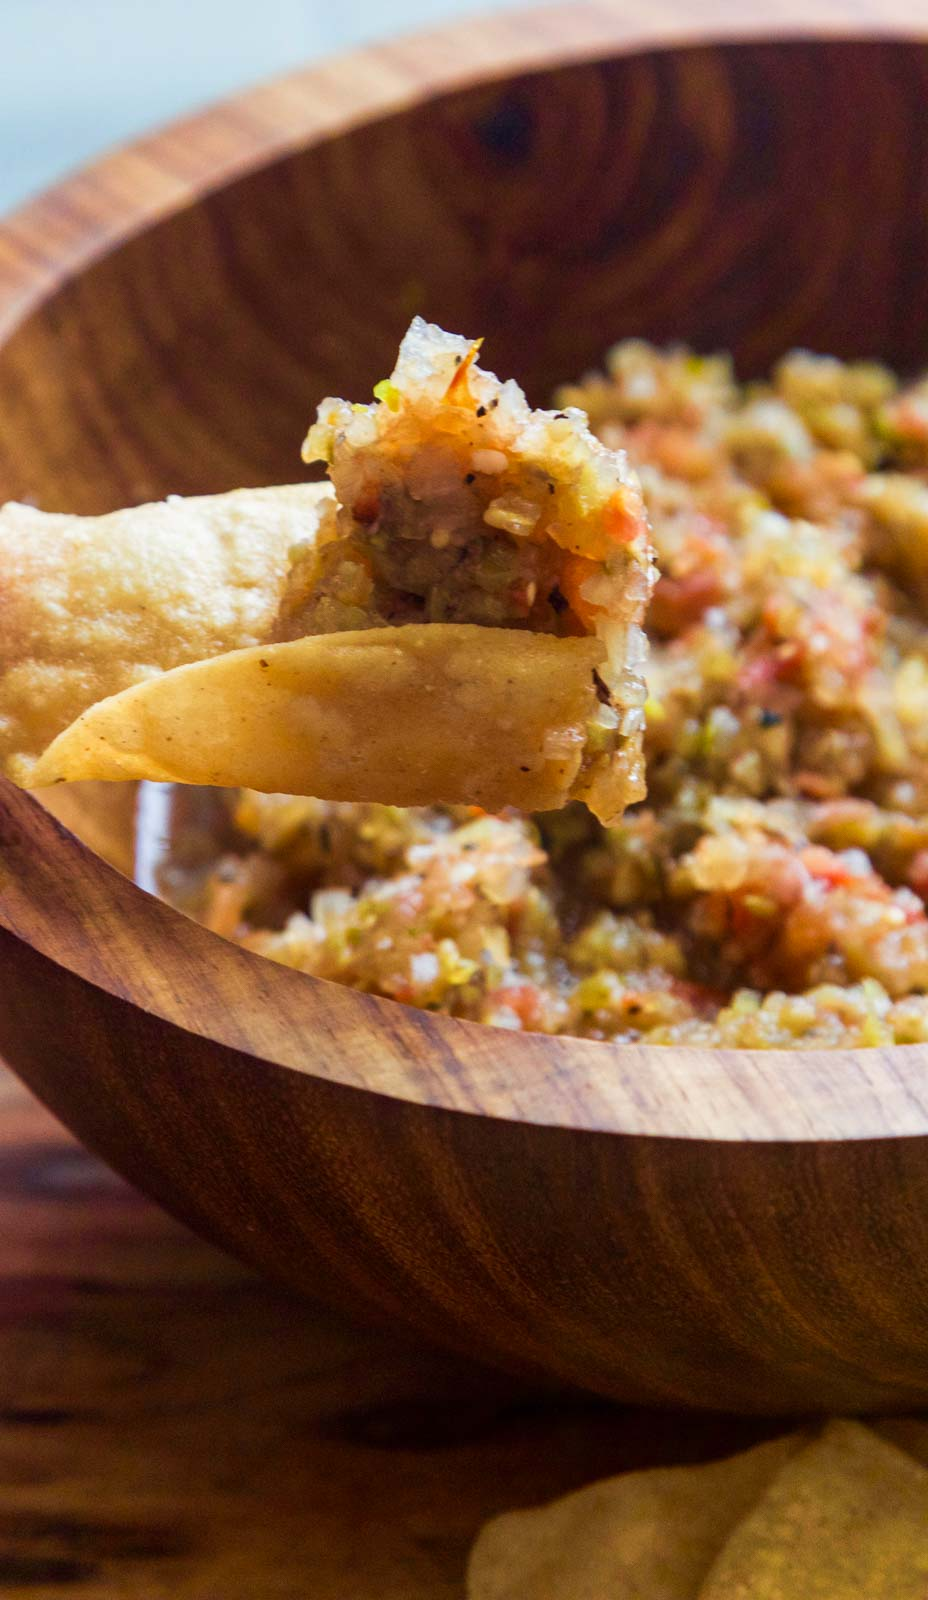 A wooden bowl with a curved tortilla scoop of homemade tomatillo salsa on it ready to take a bite.